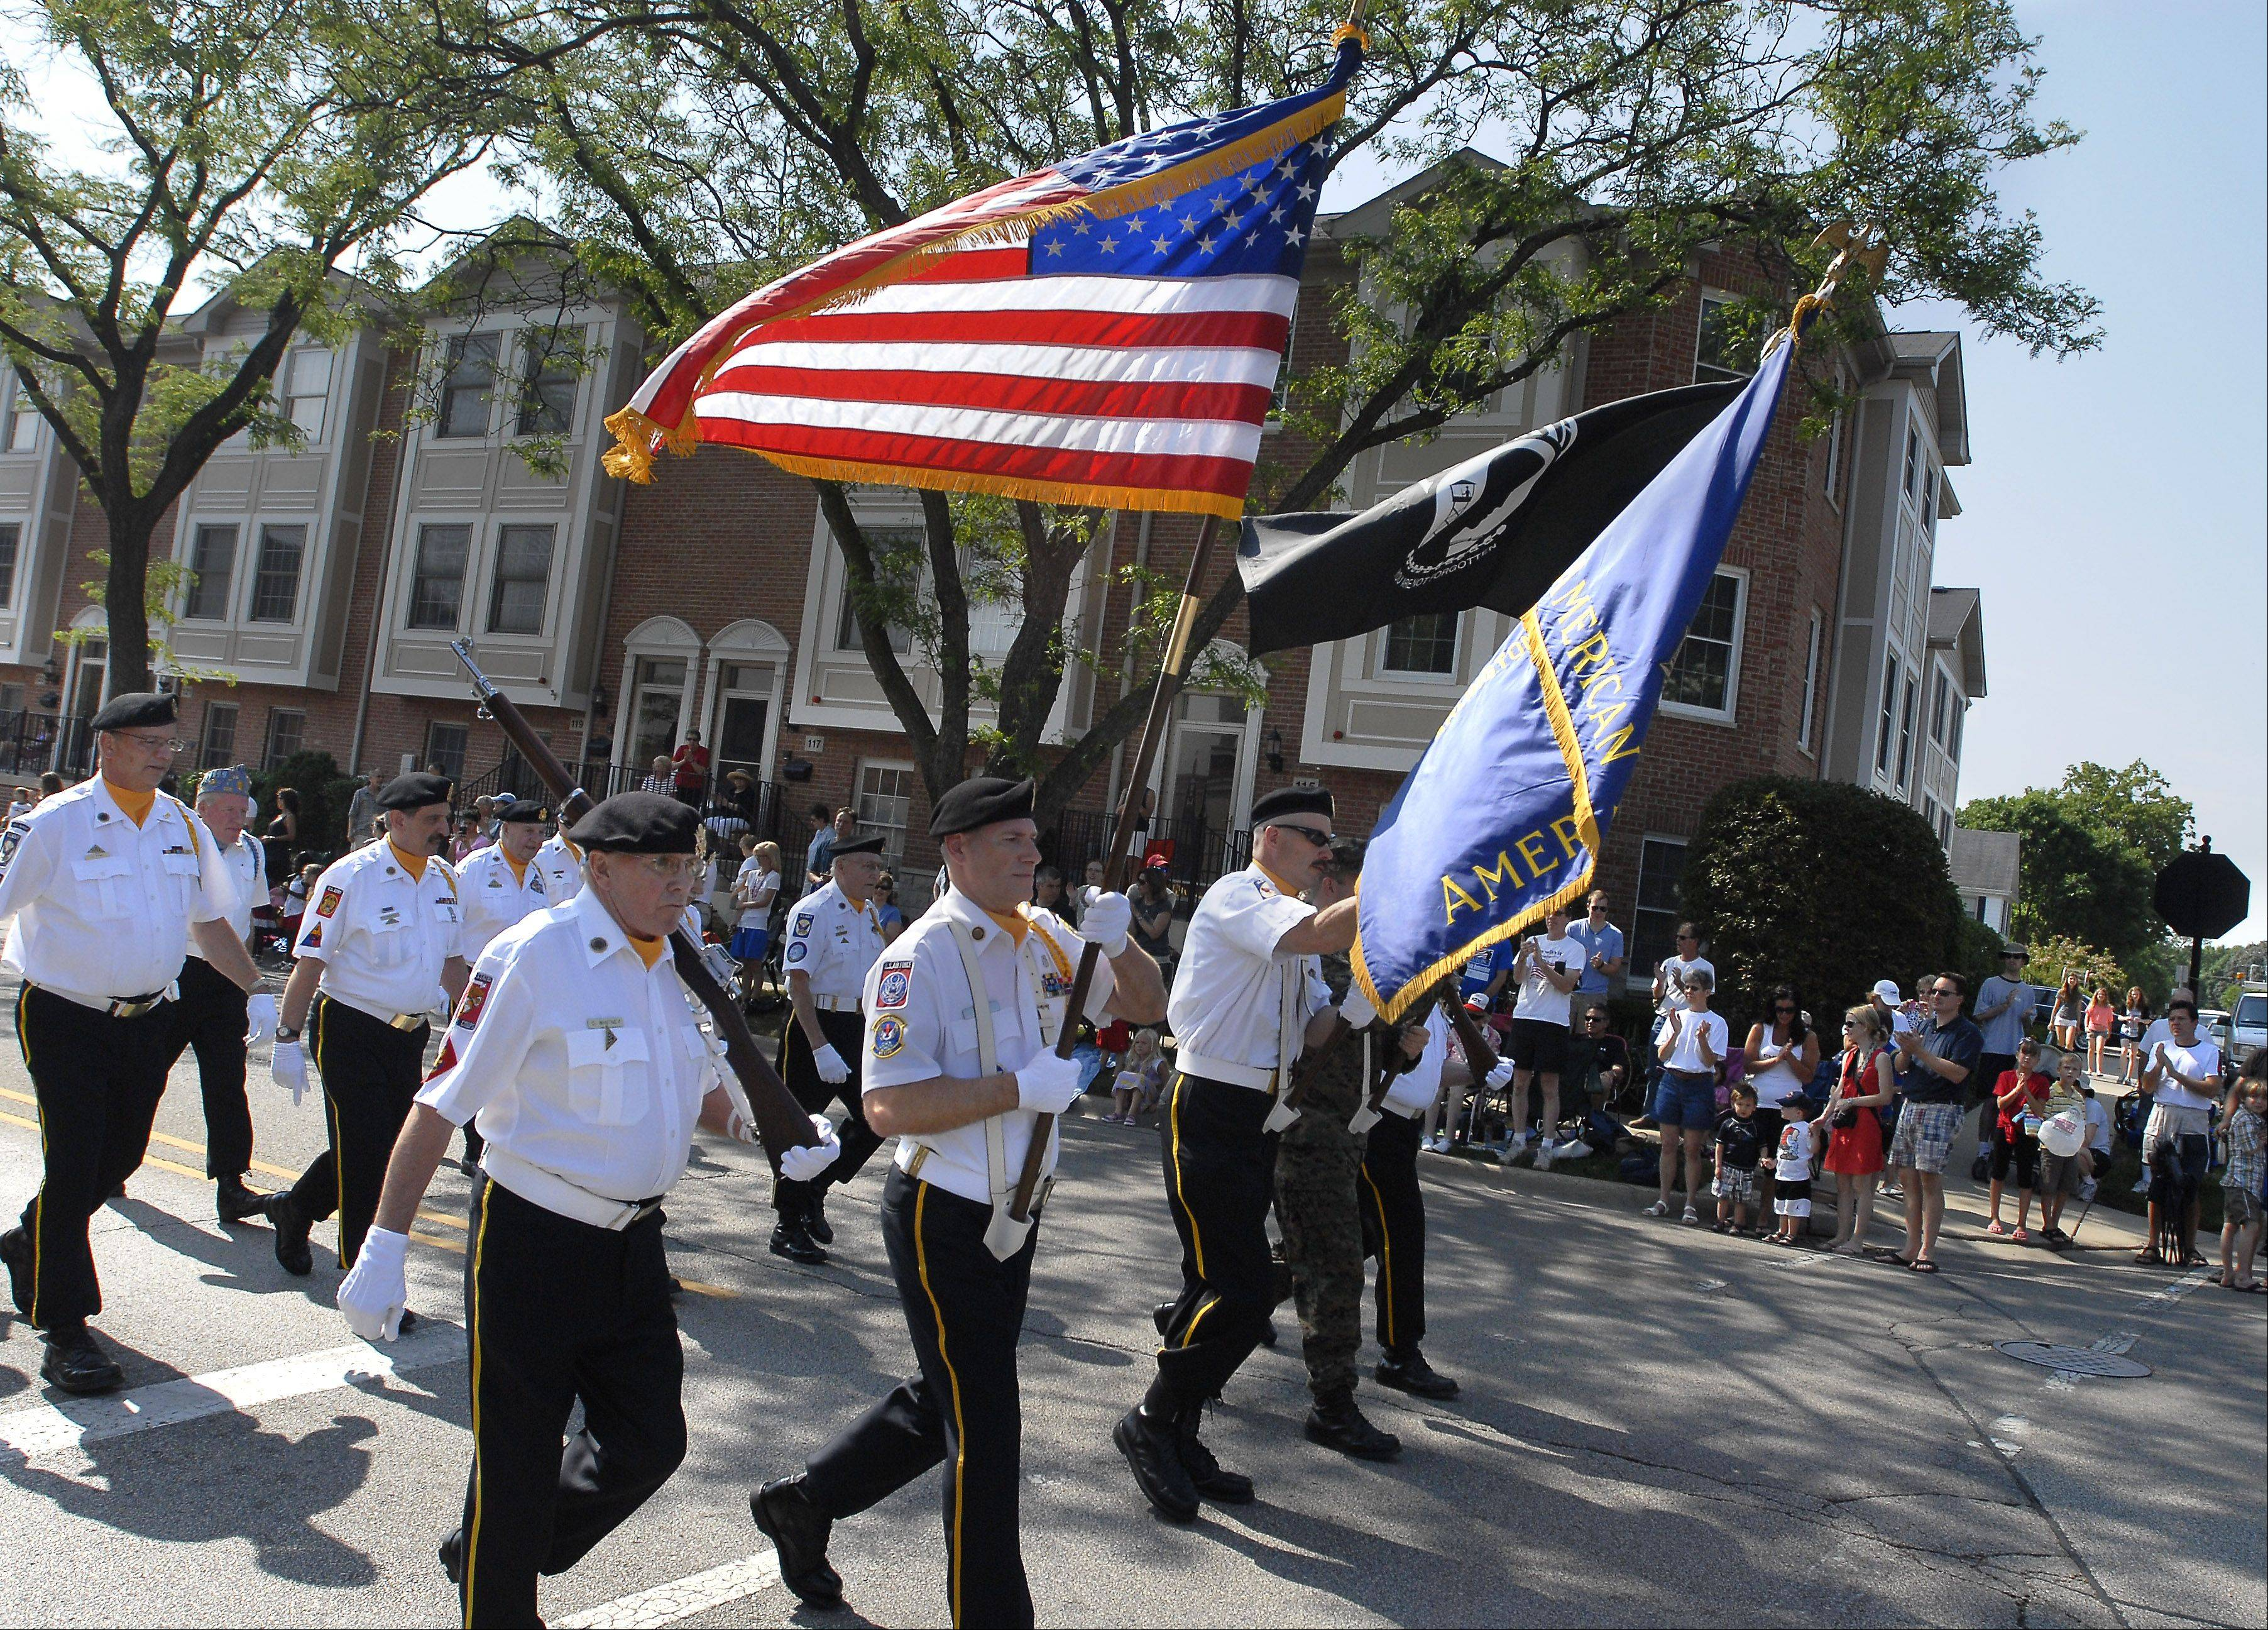 Members of the Arlington Heights American Legion Merle Guild Post 208 carry the flag.